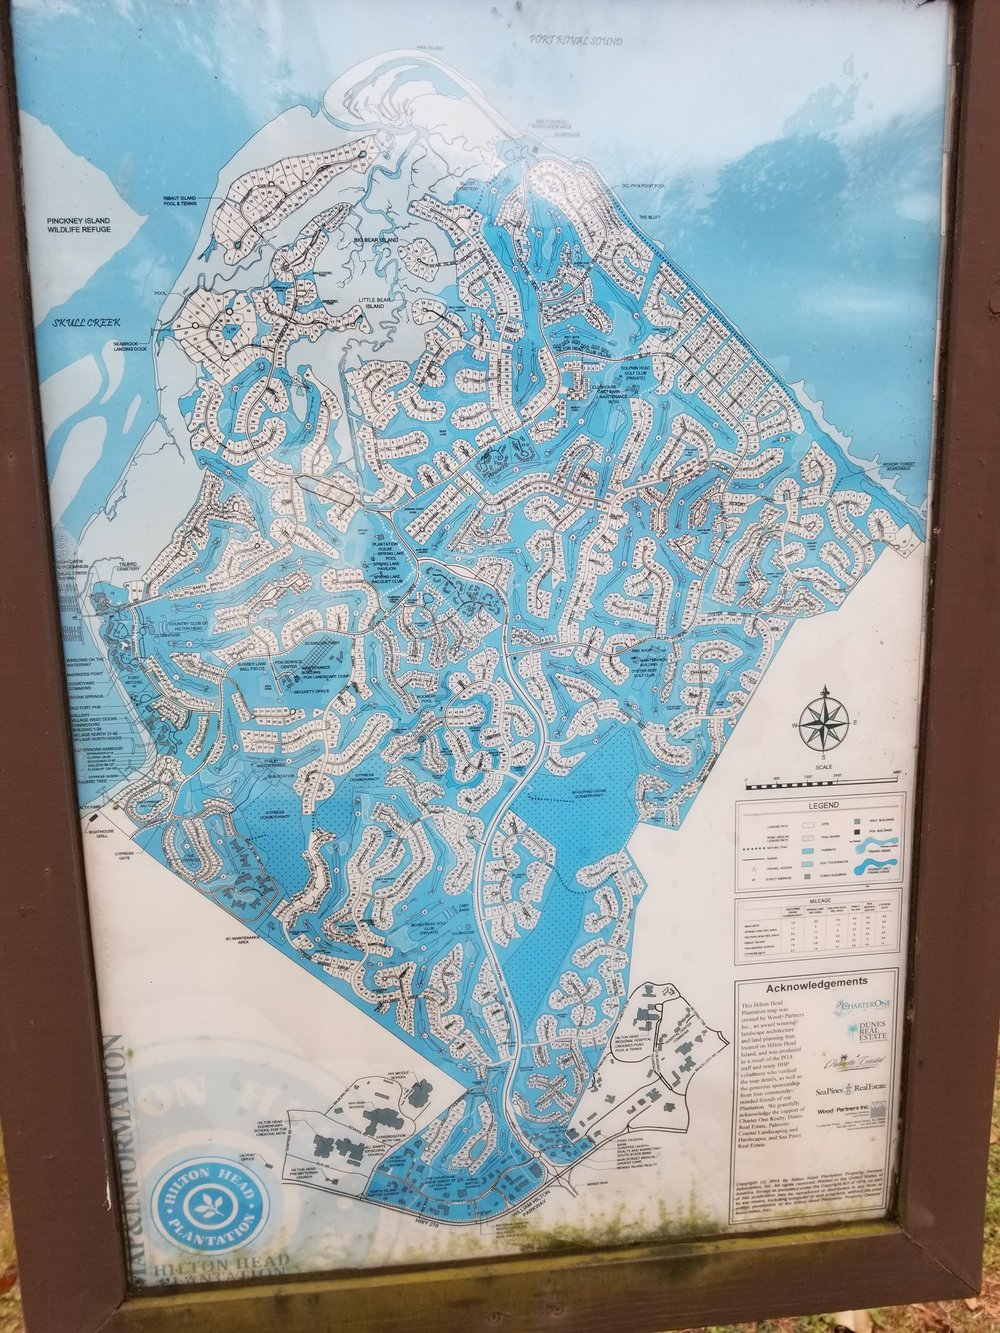 A map of Hilton Head Plantation - it's huge!  There are communities, walking paths, golf-cart paths, roads, golf-courses, conservation areas, recreation areas, and restaurants.  We were glad to find this map, because there are rules about what activities (like dog-walking) can happen where, and not all the paths are marked with their designations.